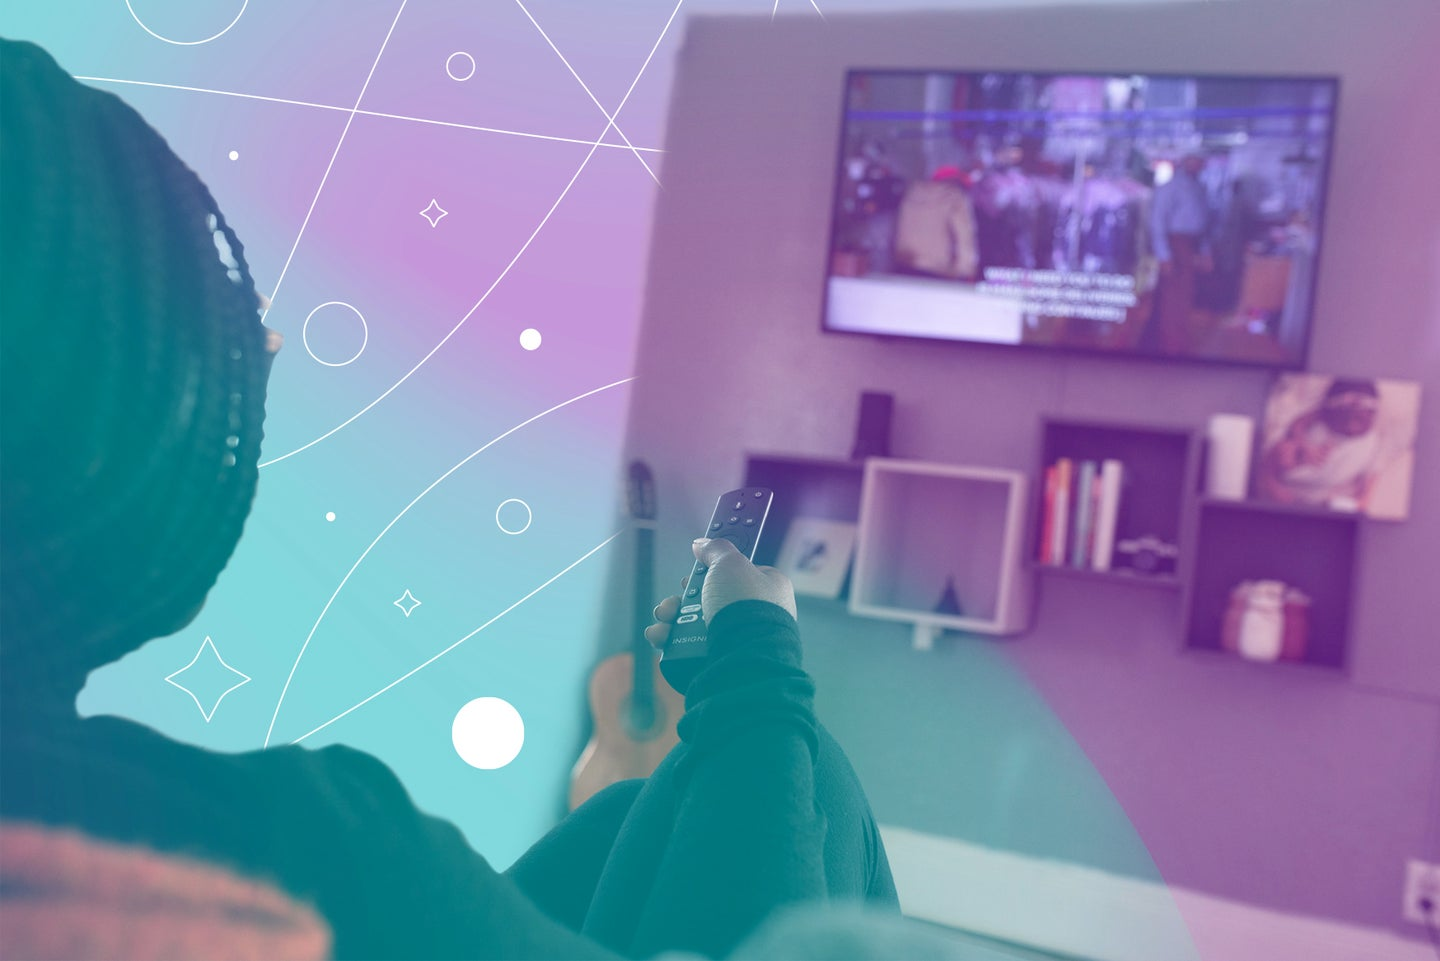 a woman with dark skin and braided hair holds a remote in her hand and points it at a TV on the opposite wall